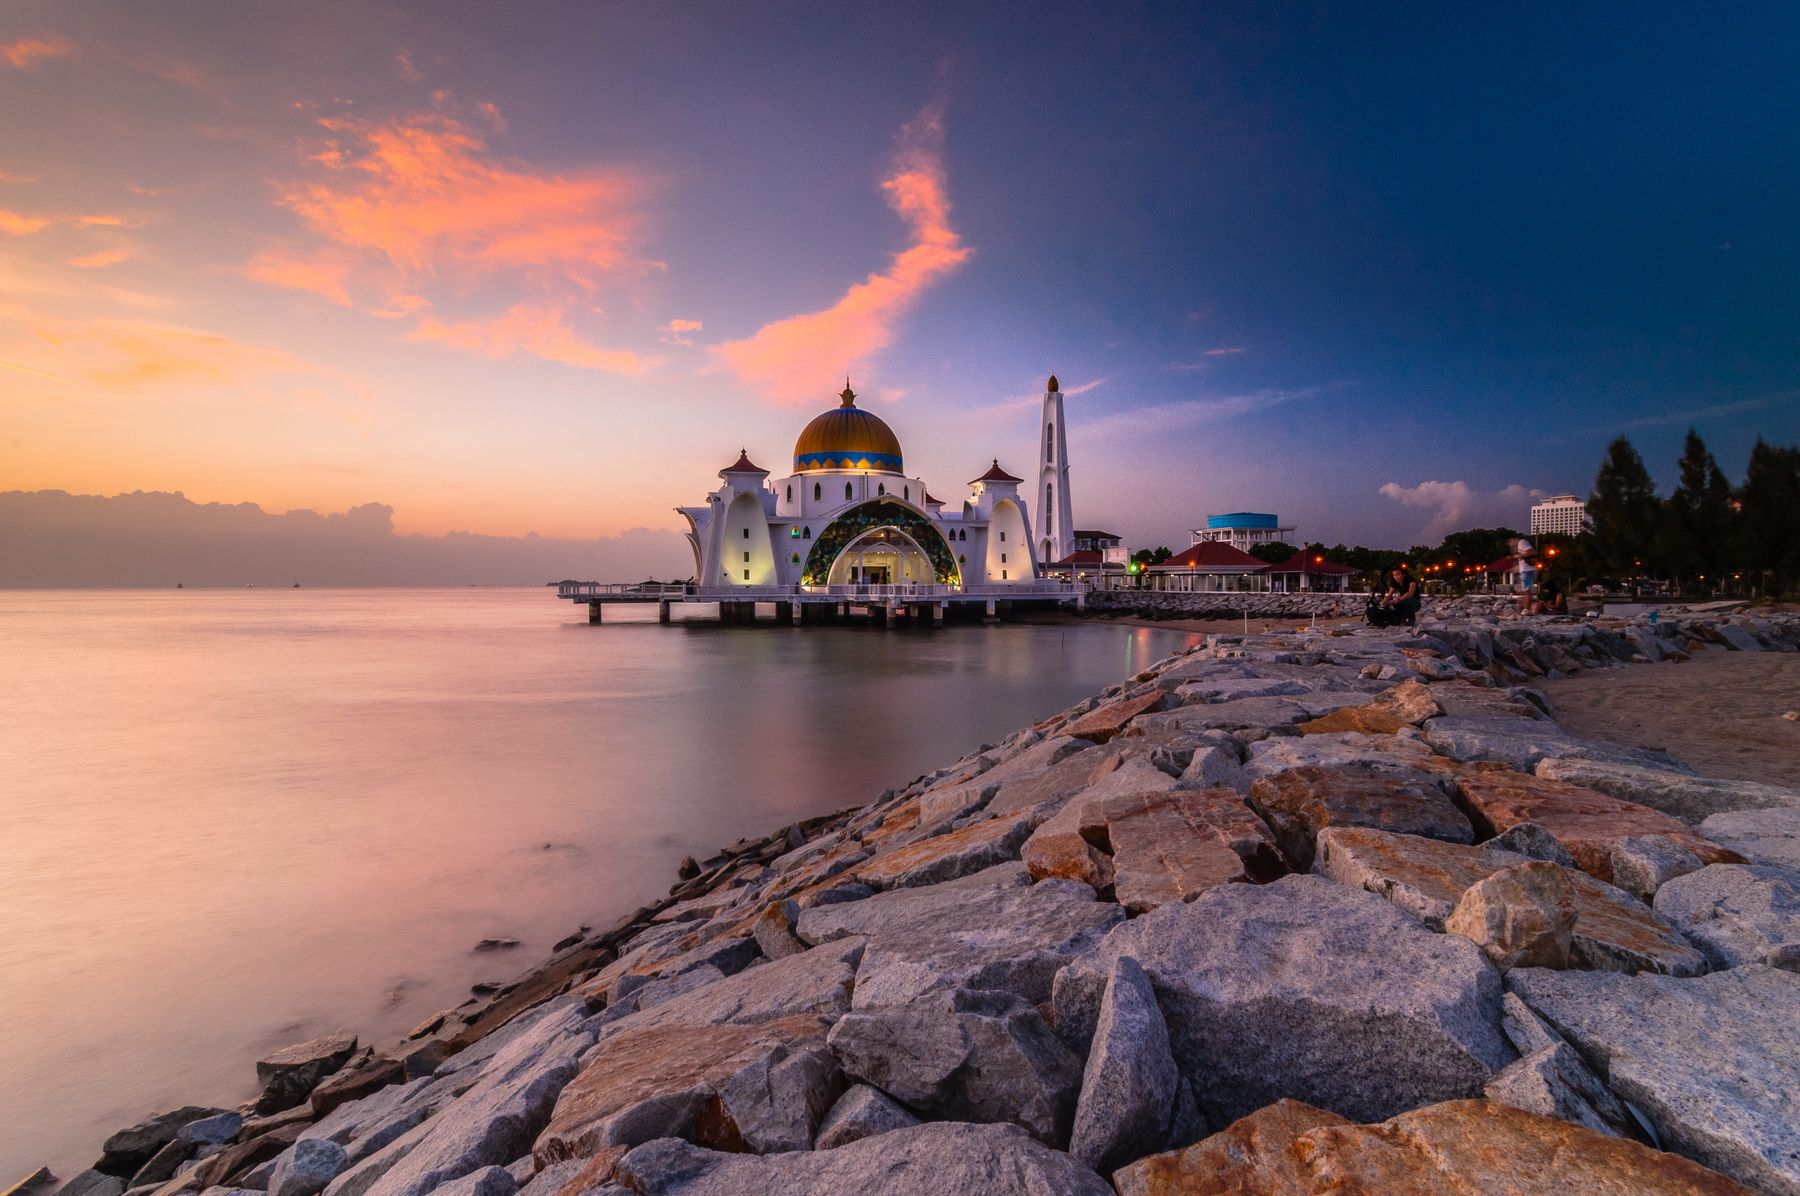 A view of the Malaysian coast at sunset